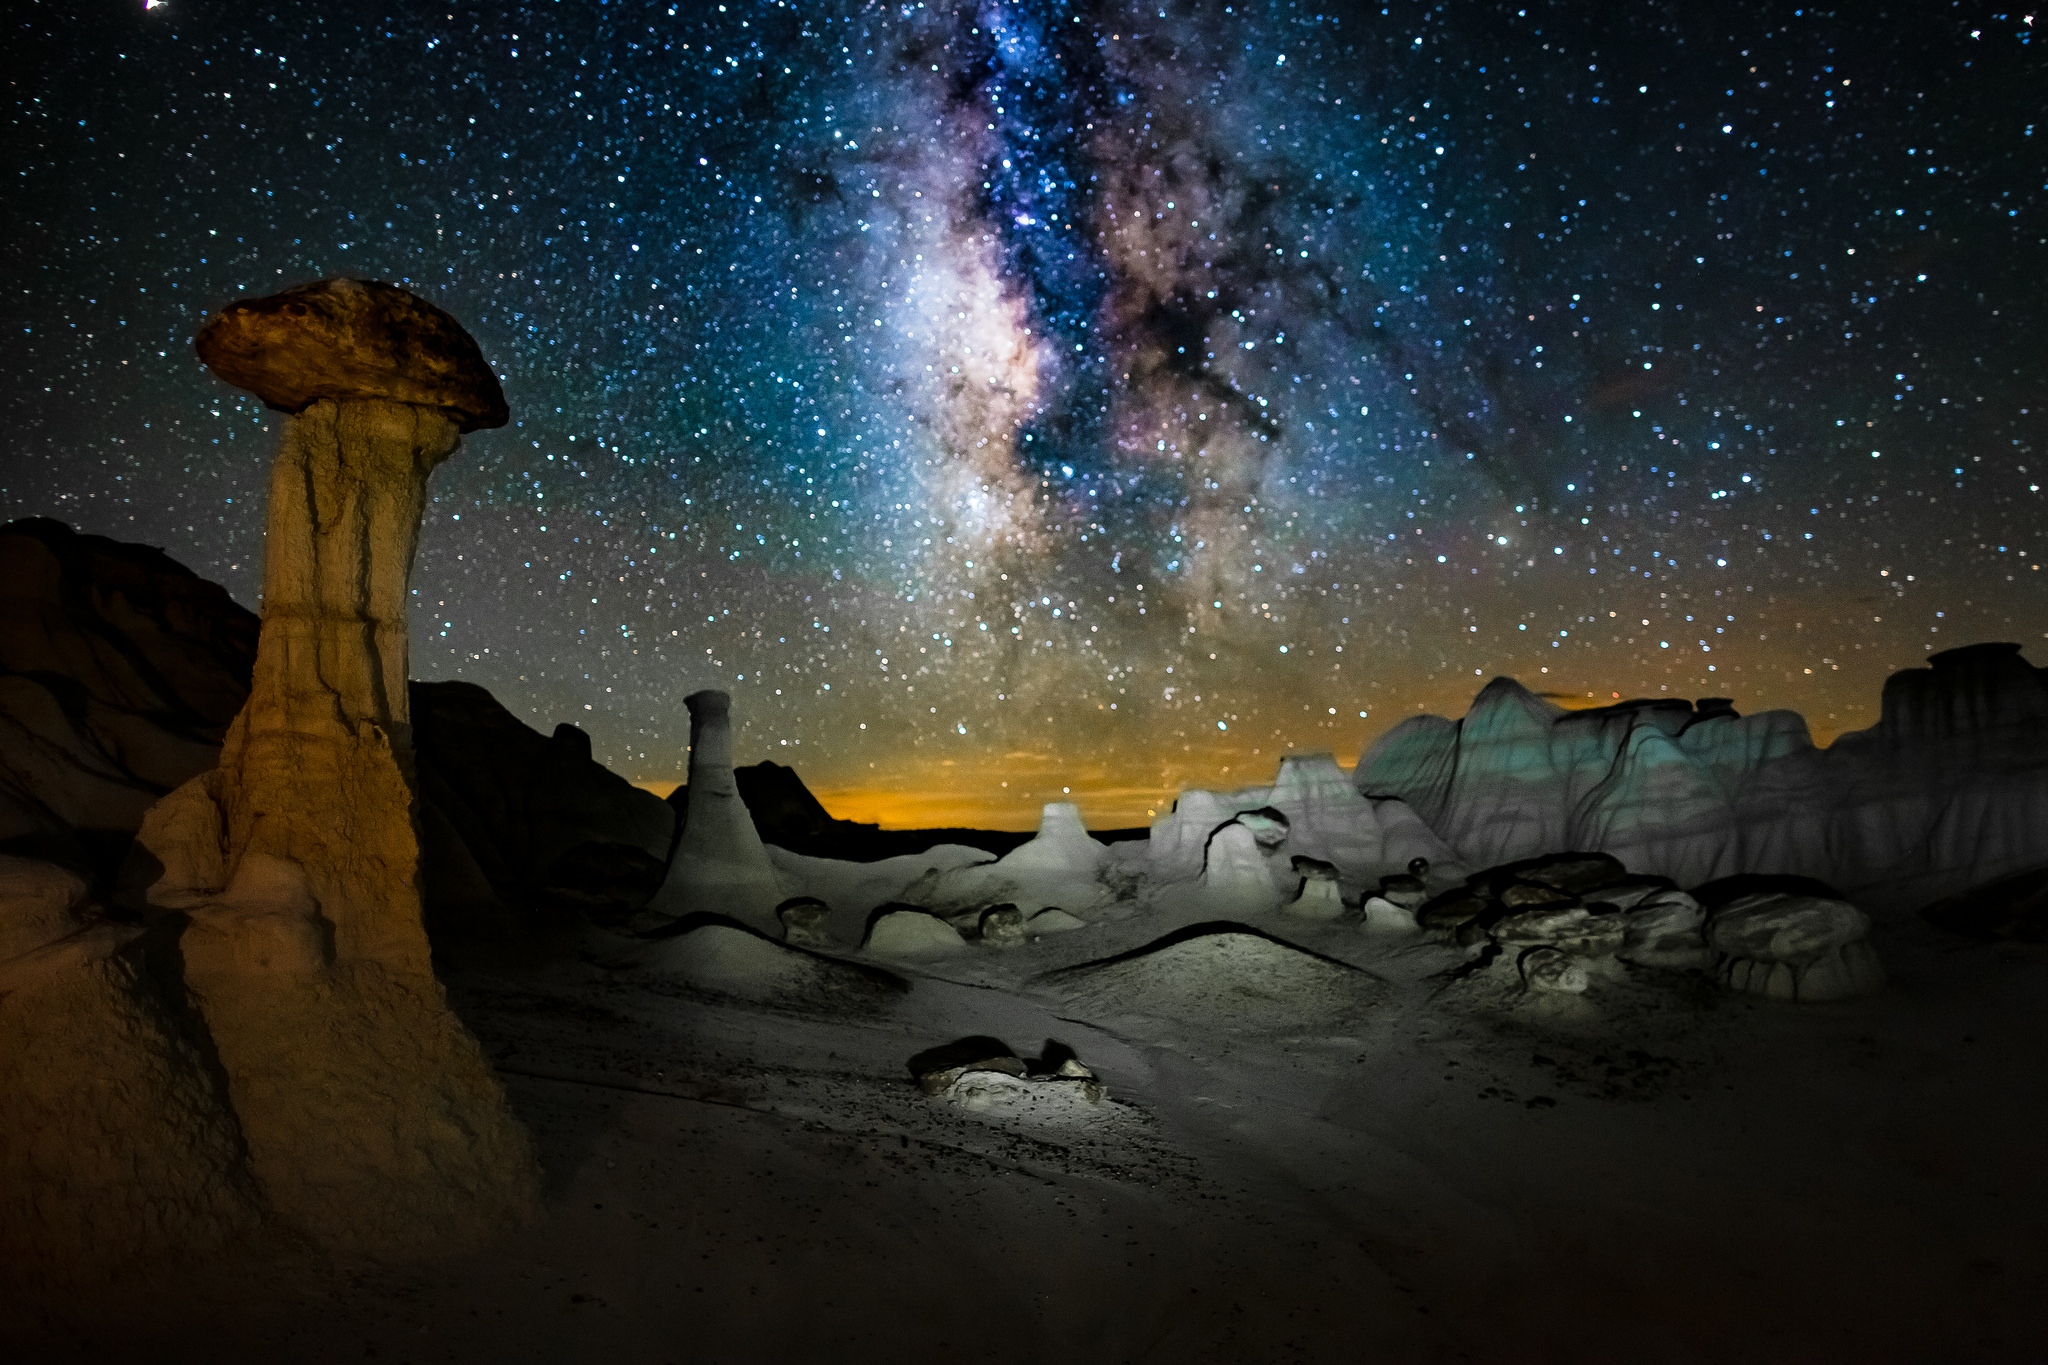 galactic journey    Image by    vo    lkhard sturzbecher     light painting with low level LED panels at the BLM Wilderness Study Area in New Mexico